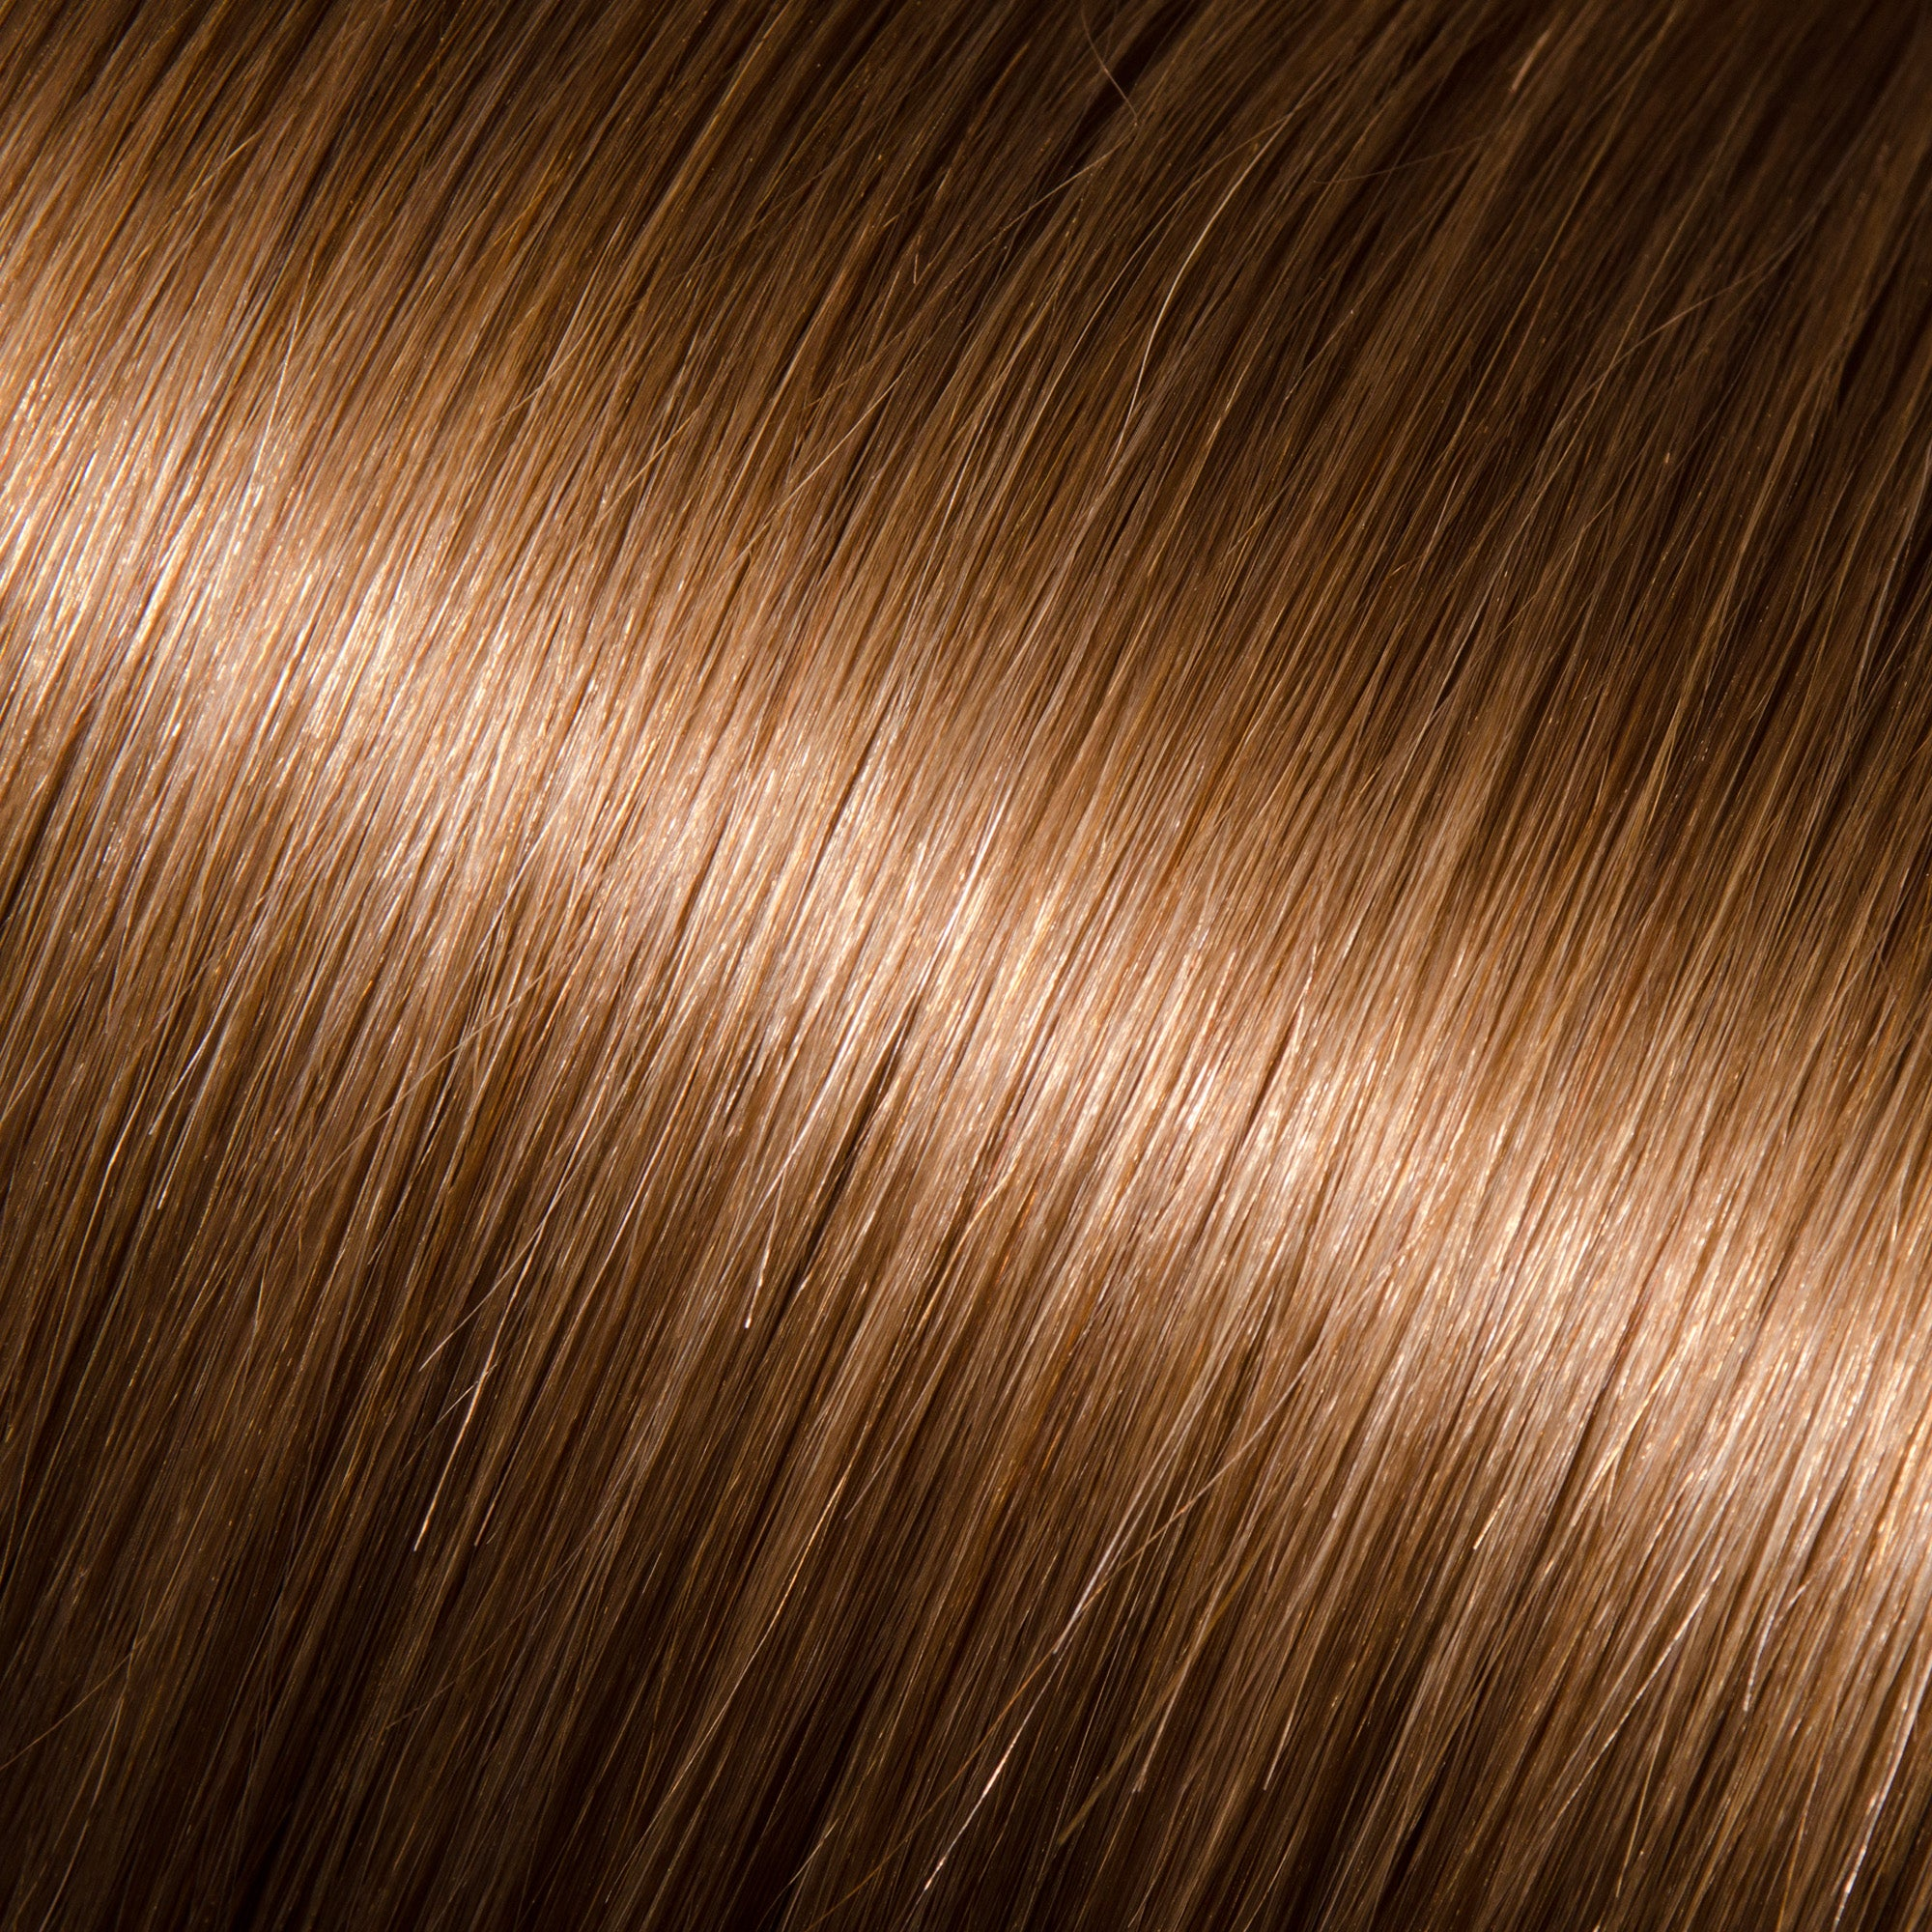 Light Golden Chestnut Hair Color